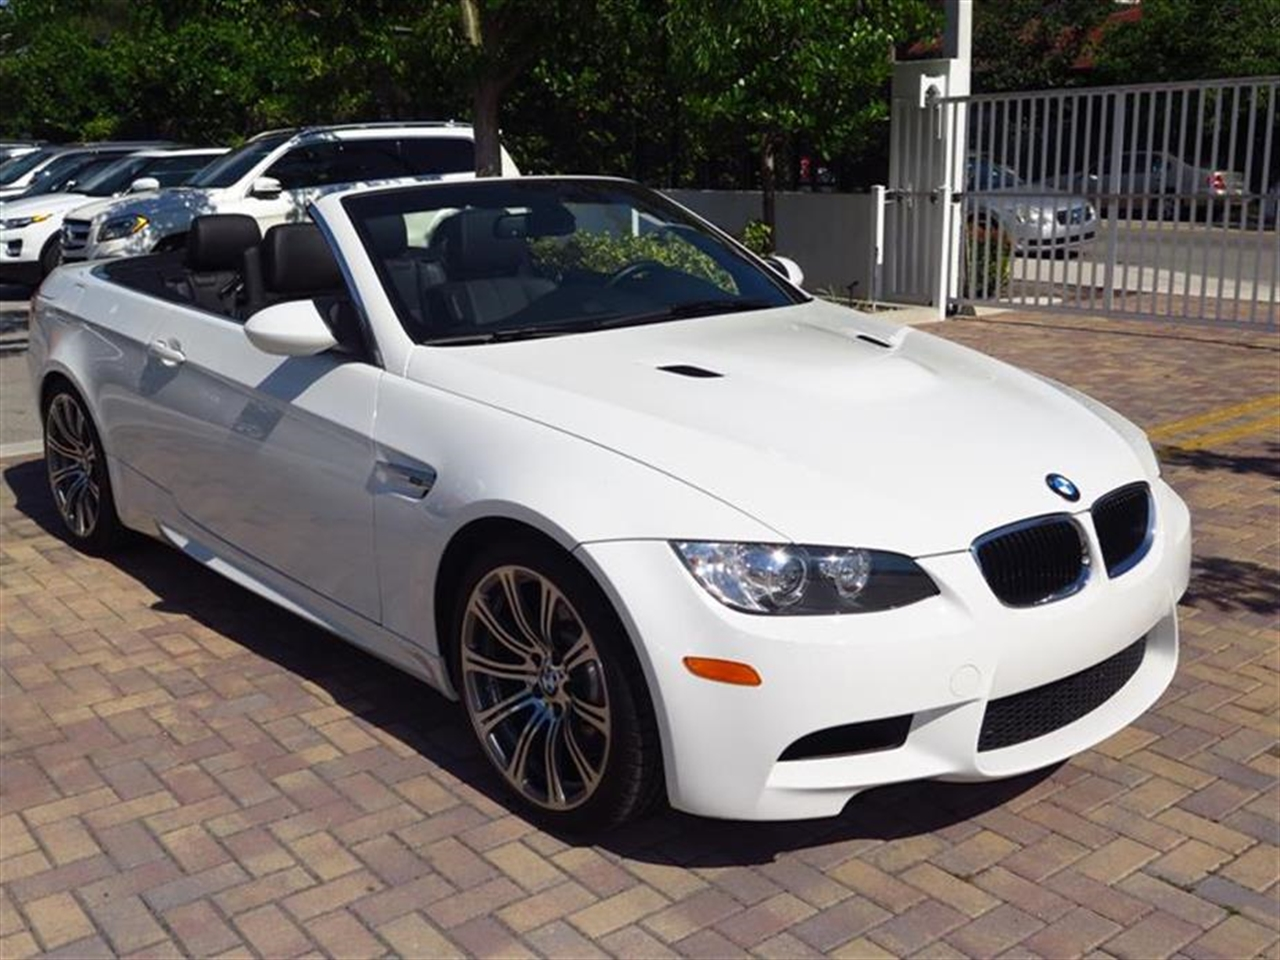 2013 BMW M3 2dr Conv 13674 miles 3-spoke leather-wrapped multi-function M sport steering wheel w